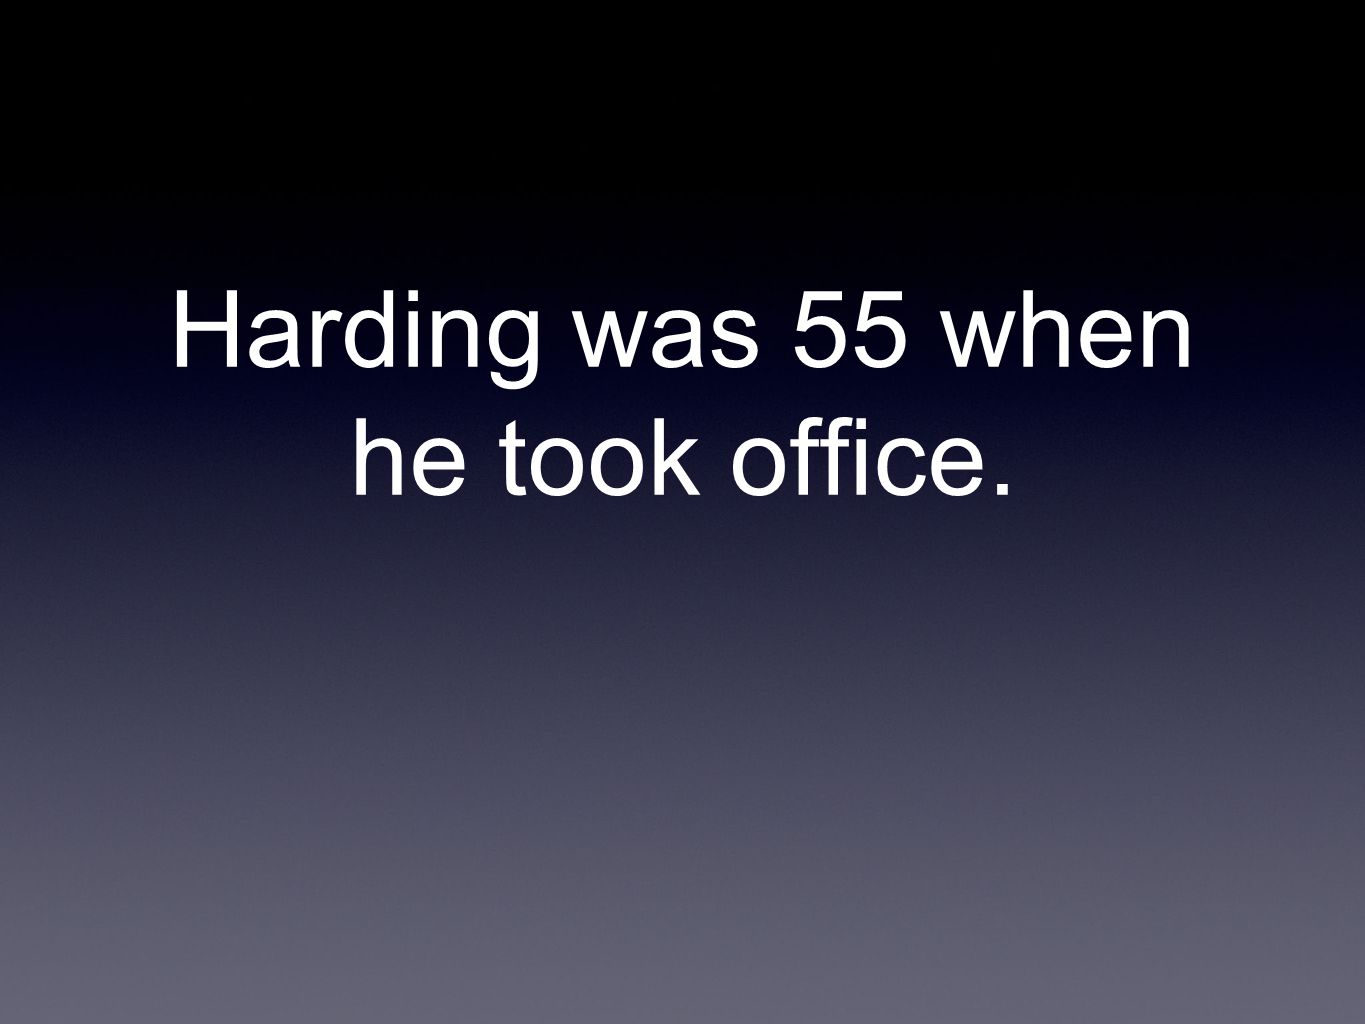 Harding was 55 when he took office.